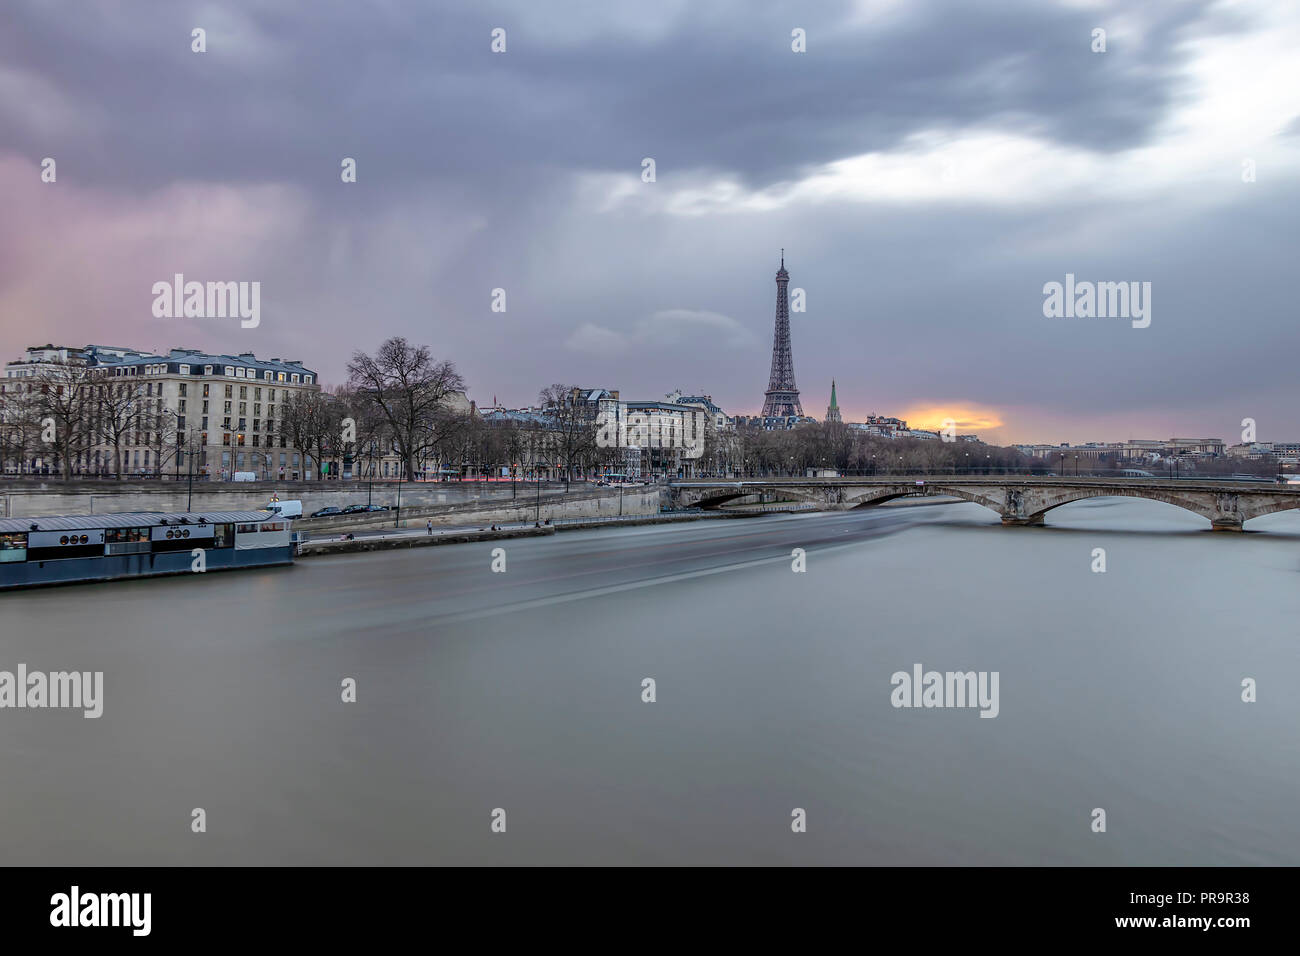 Long exposure photography of sunset in Paris in a cloudy day, with Seine river and Eiffel tower - Stock Image